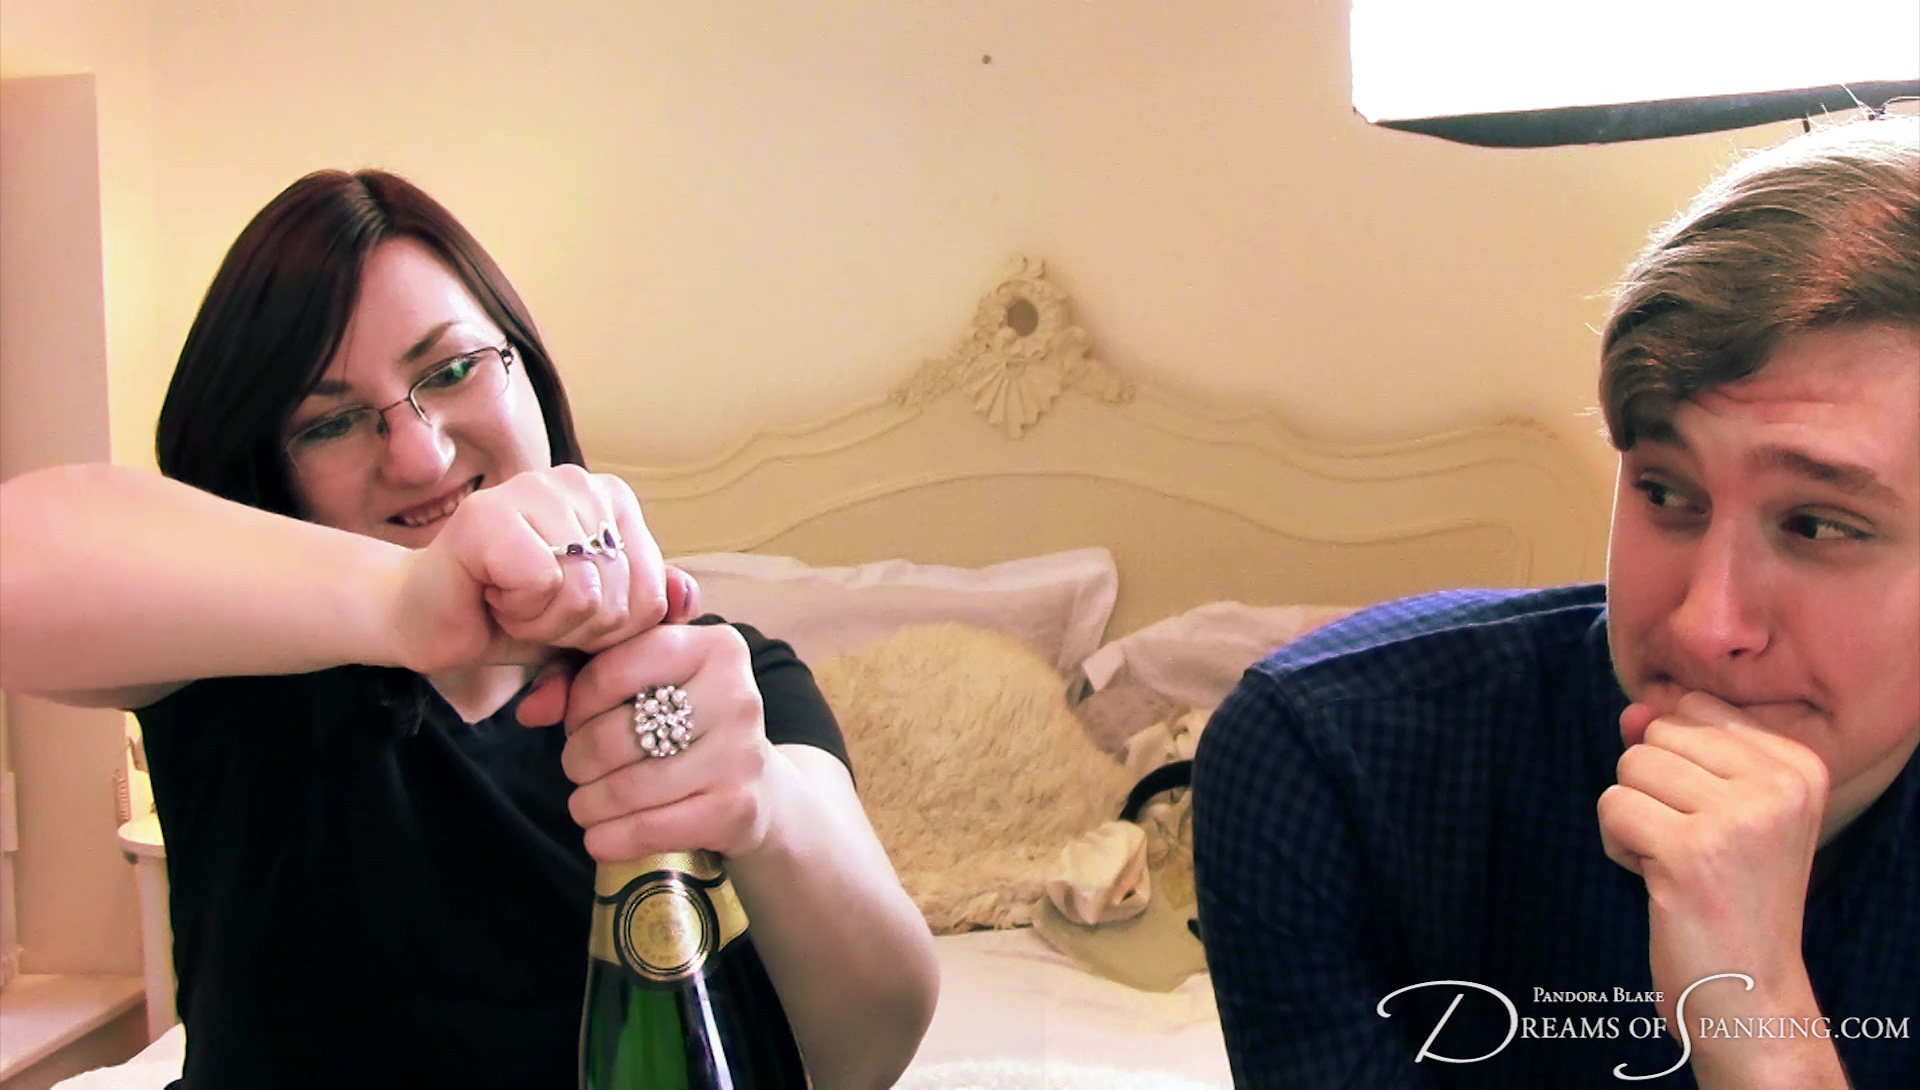 Champagne time with Tai and Pandora! Will you join us in celebrating?